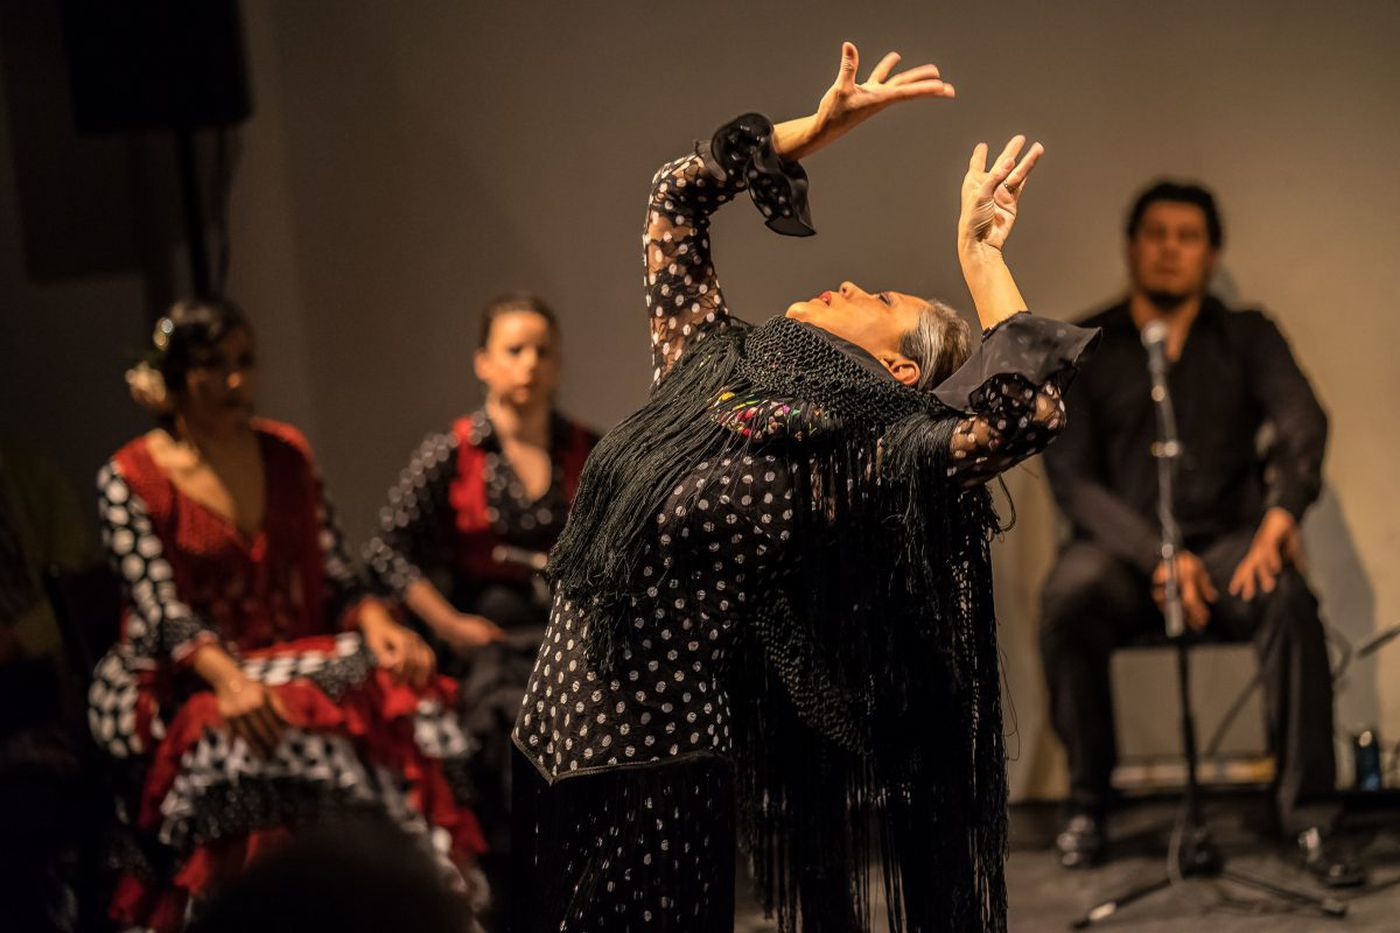 Flamenco Friday is what's on tap at the Barnes this week